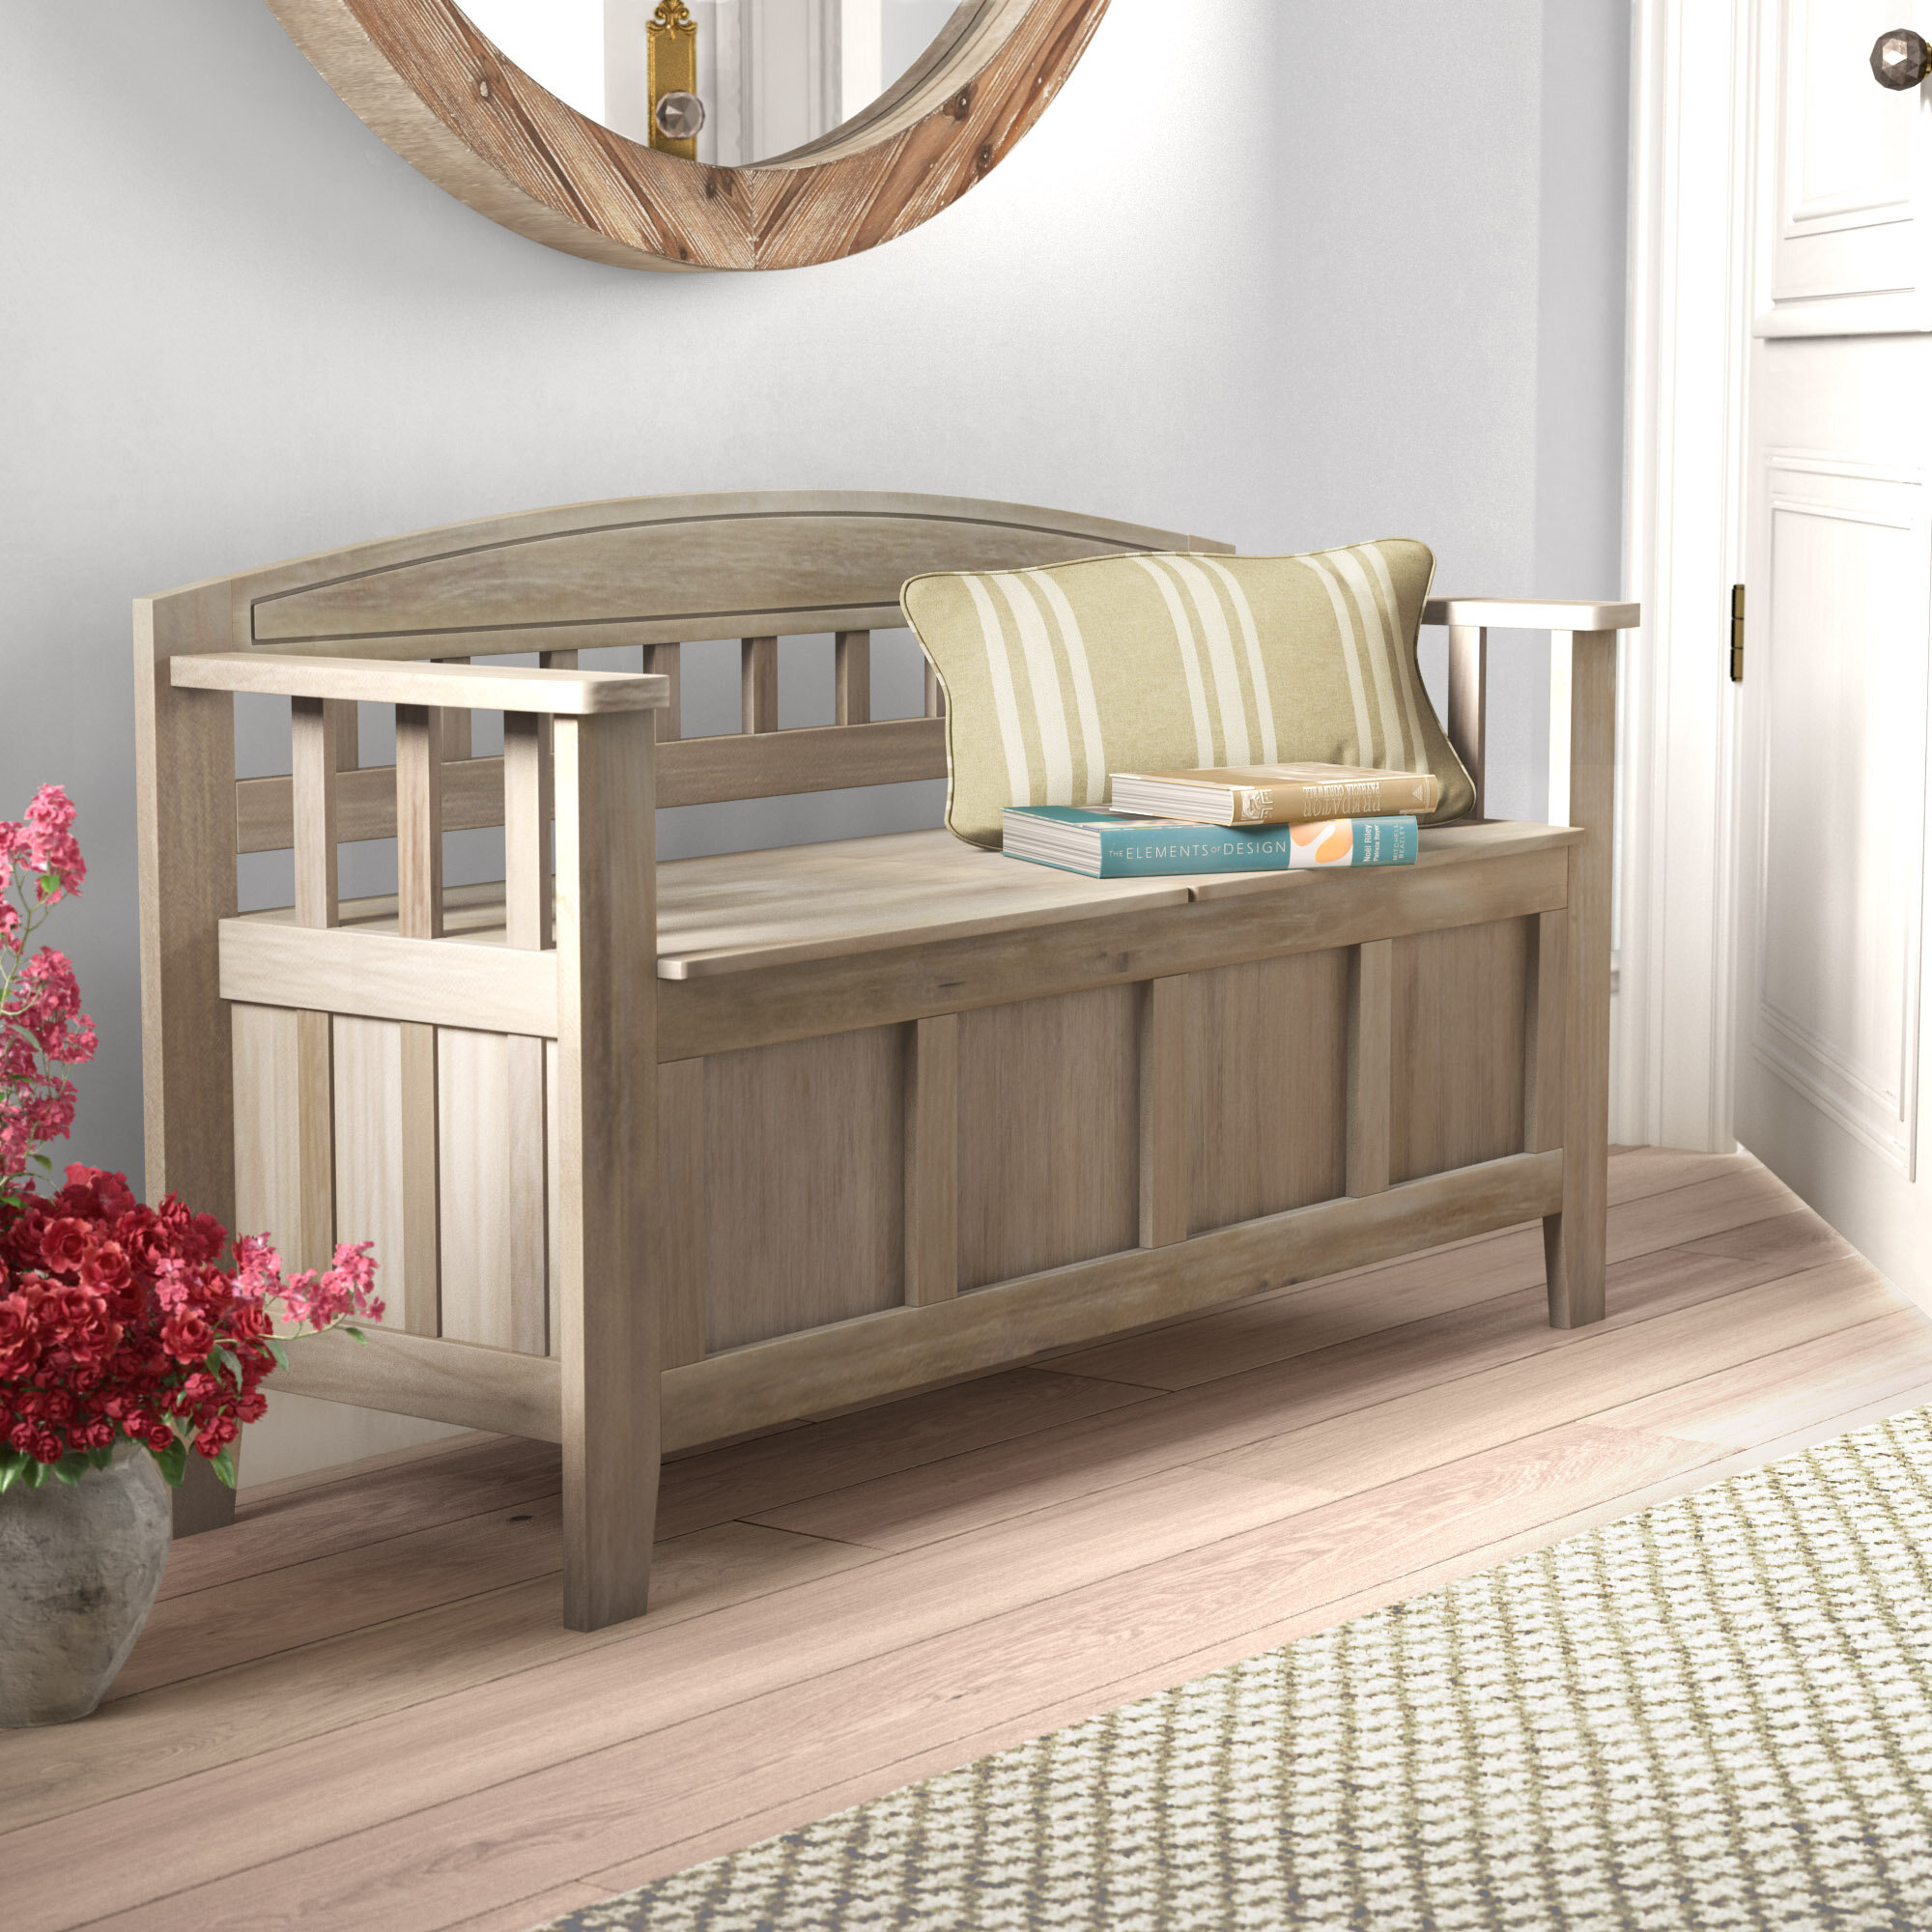 Magnificent Gracie Oaks Apruva Wood Storage Bench Reviews Wayfair Caraccident5 Cool Chair Designs And Ideas Caraccident5Info